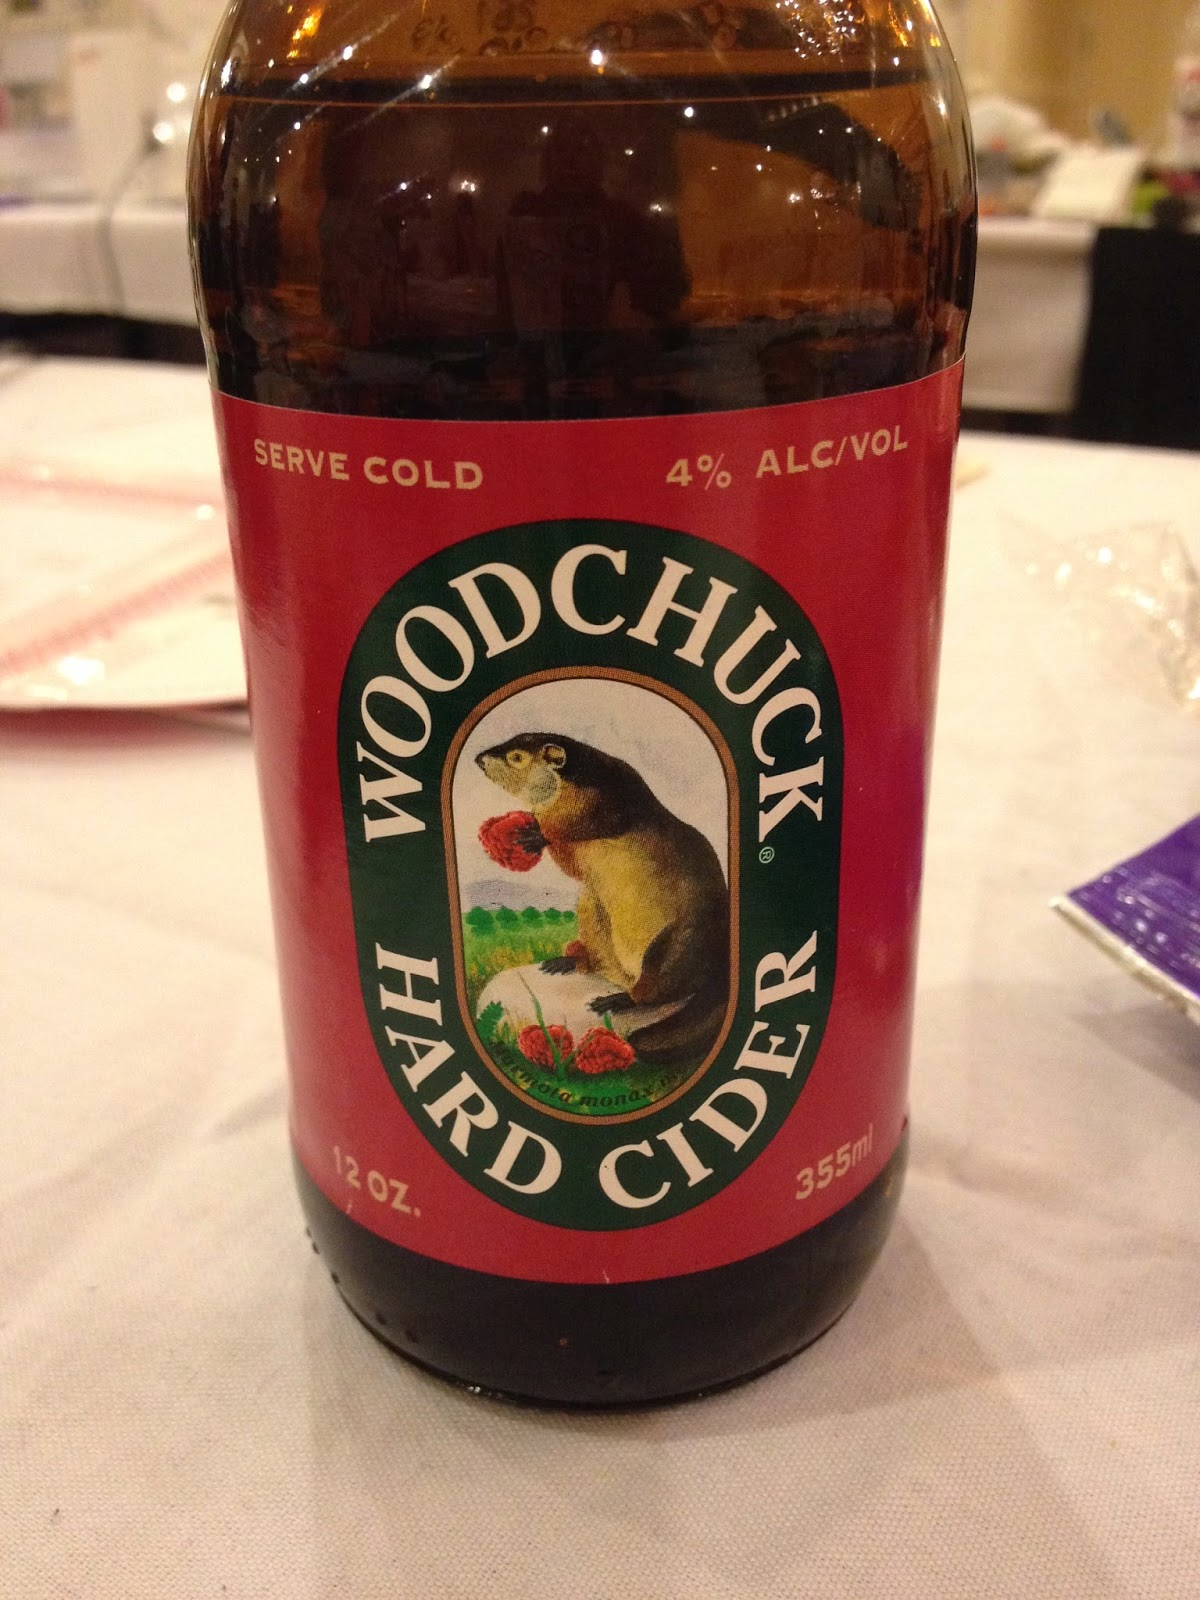 Wood Chuck Hard Cider